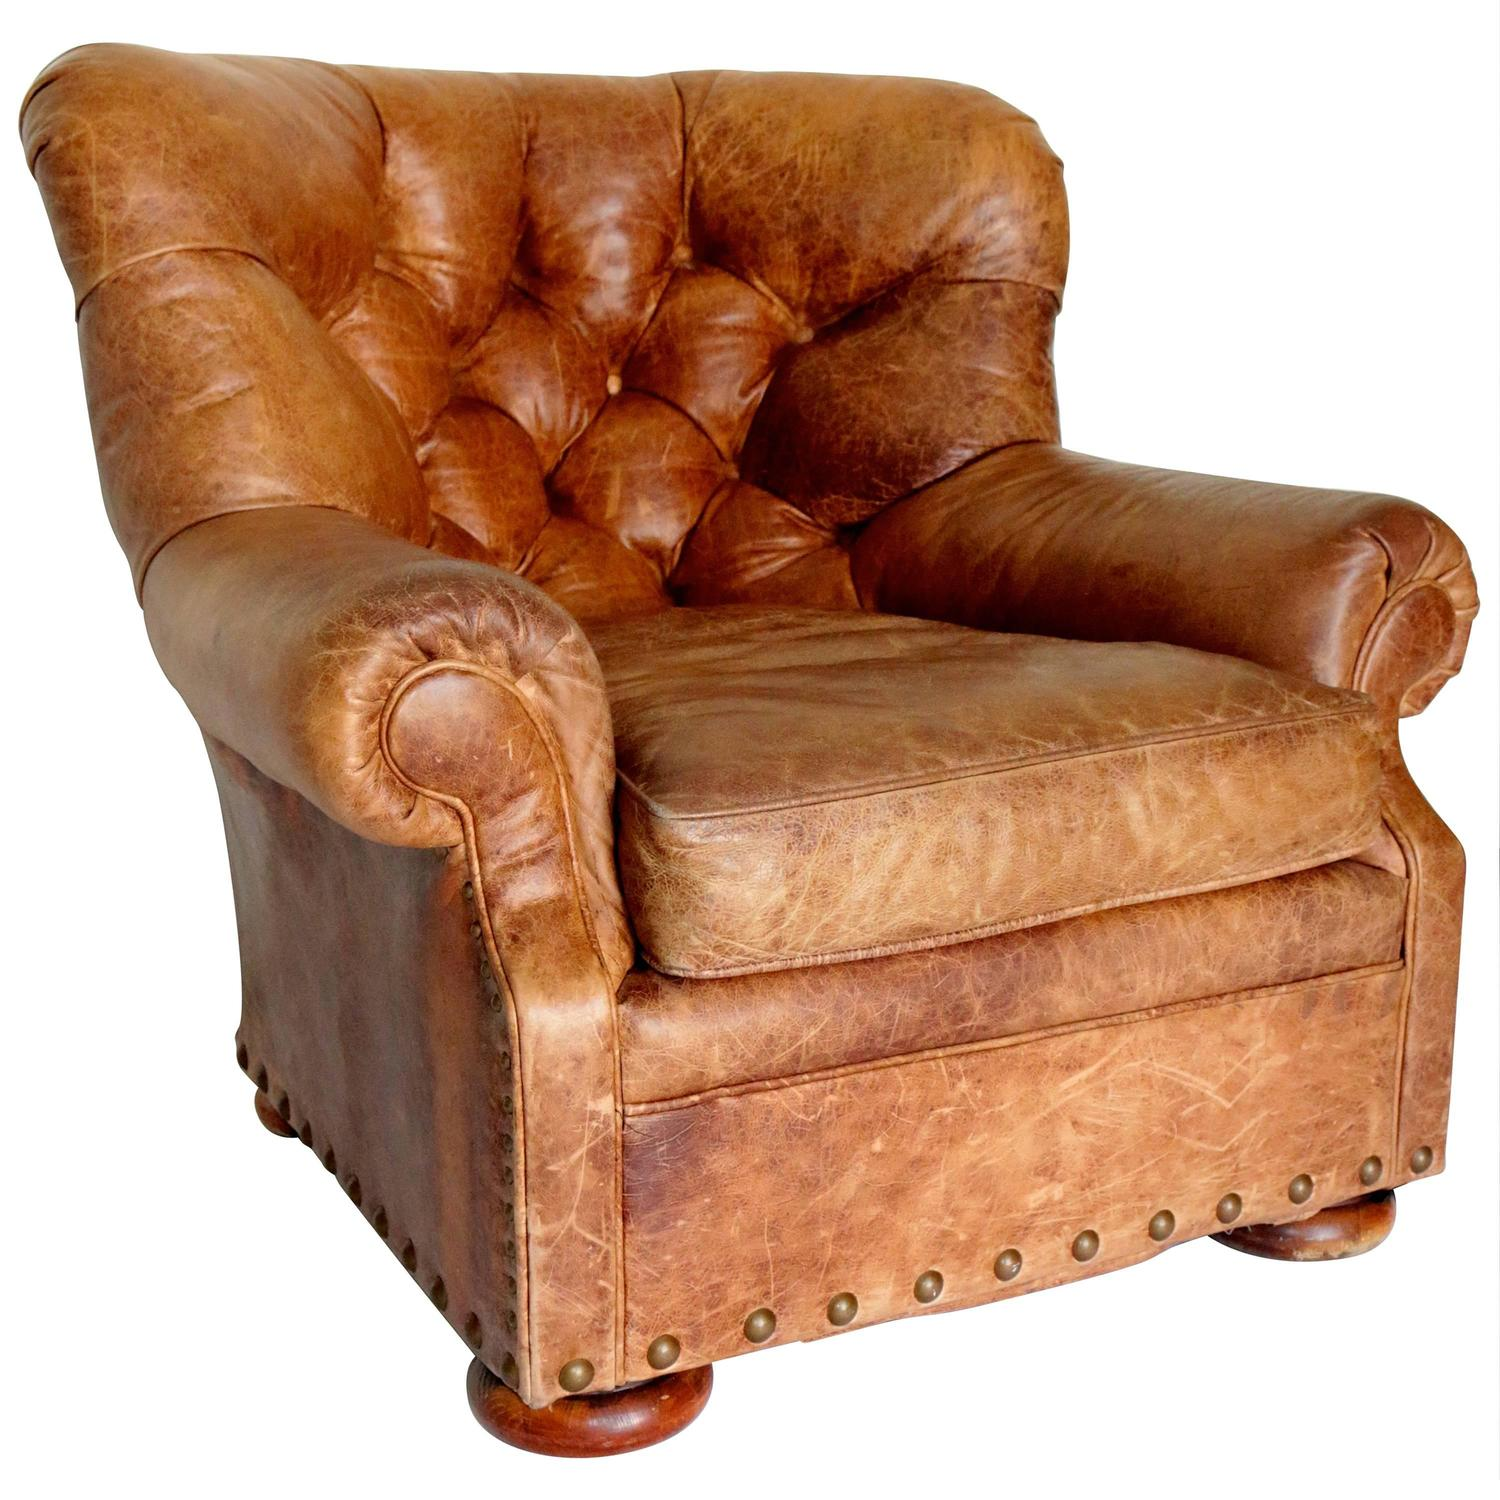 Ralph Lauren Distressed Writers Leather Club Chair at 1stdibs